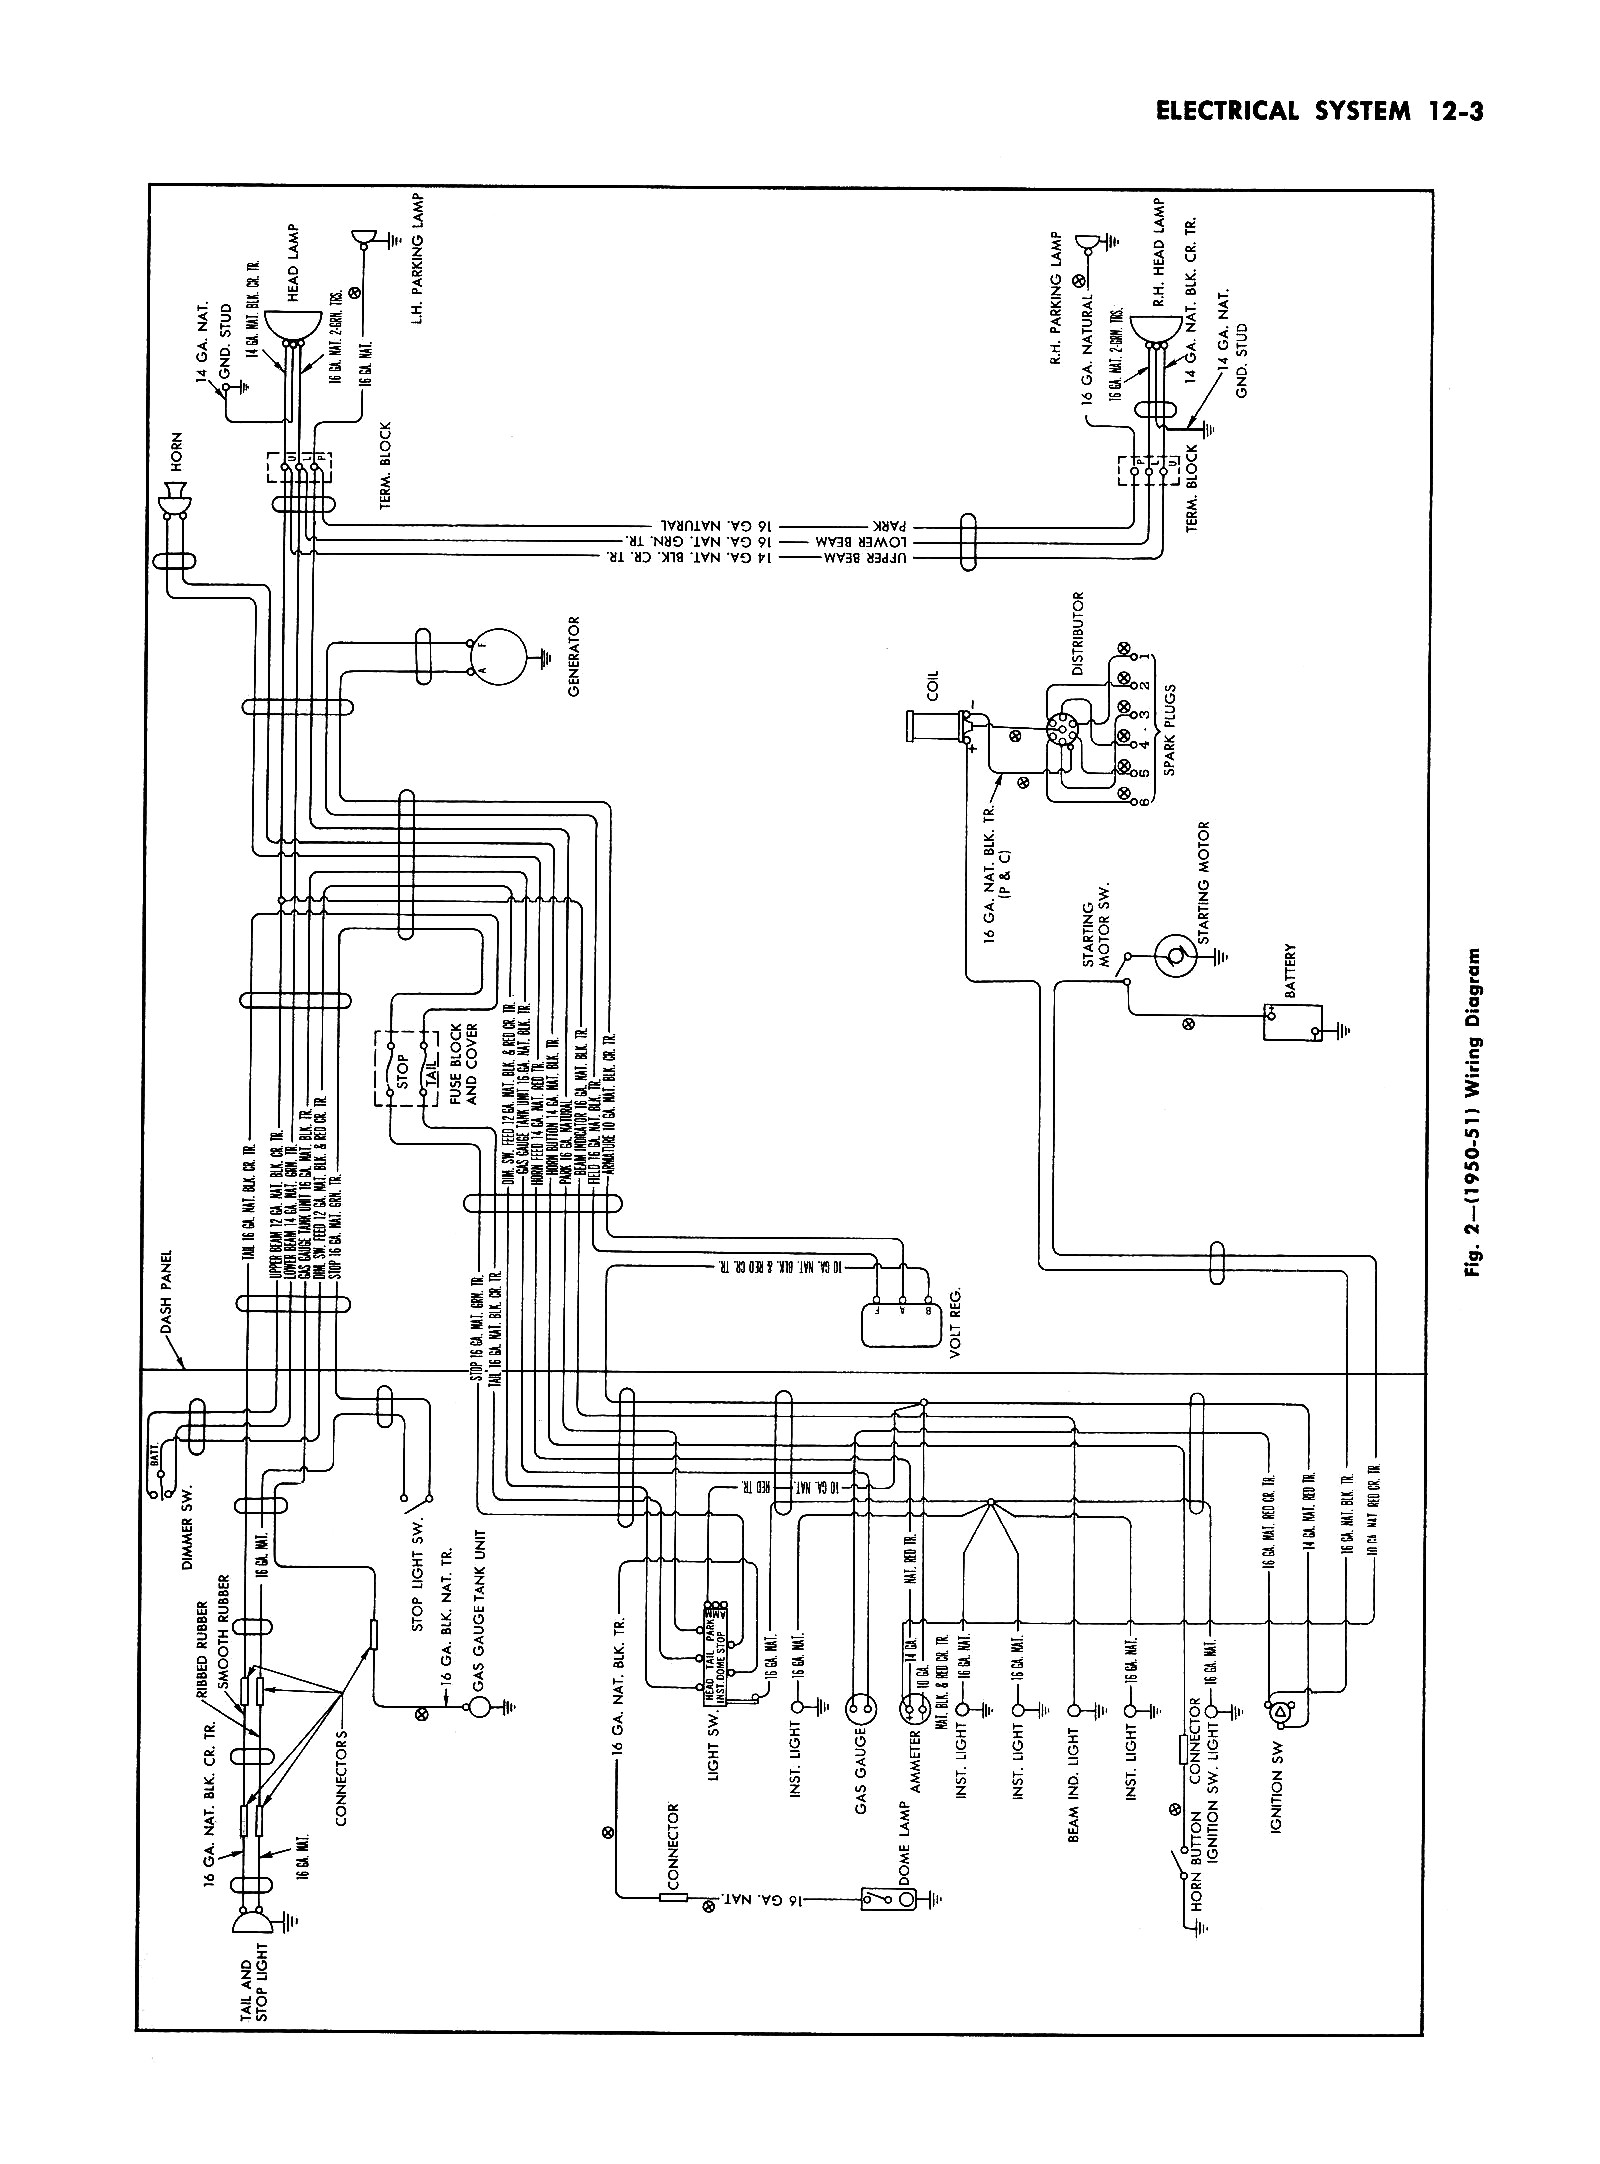 hight resolution of wiring diagram 1953 plymouth wiring diagrams konsult wiring diagram 1947 1953 also 1941 chevy special deluxe